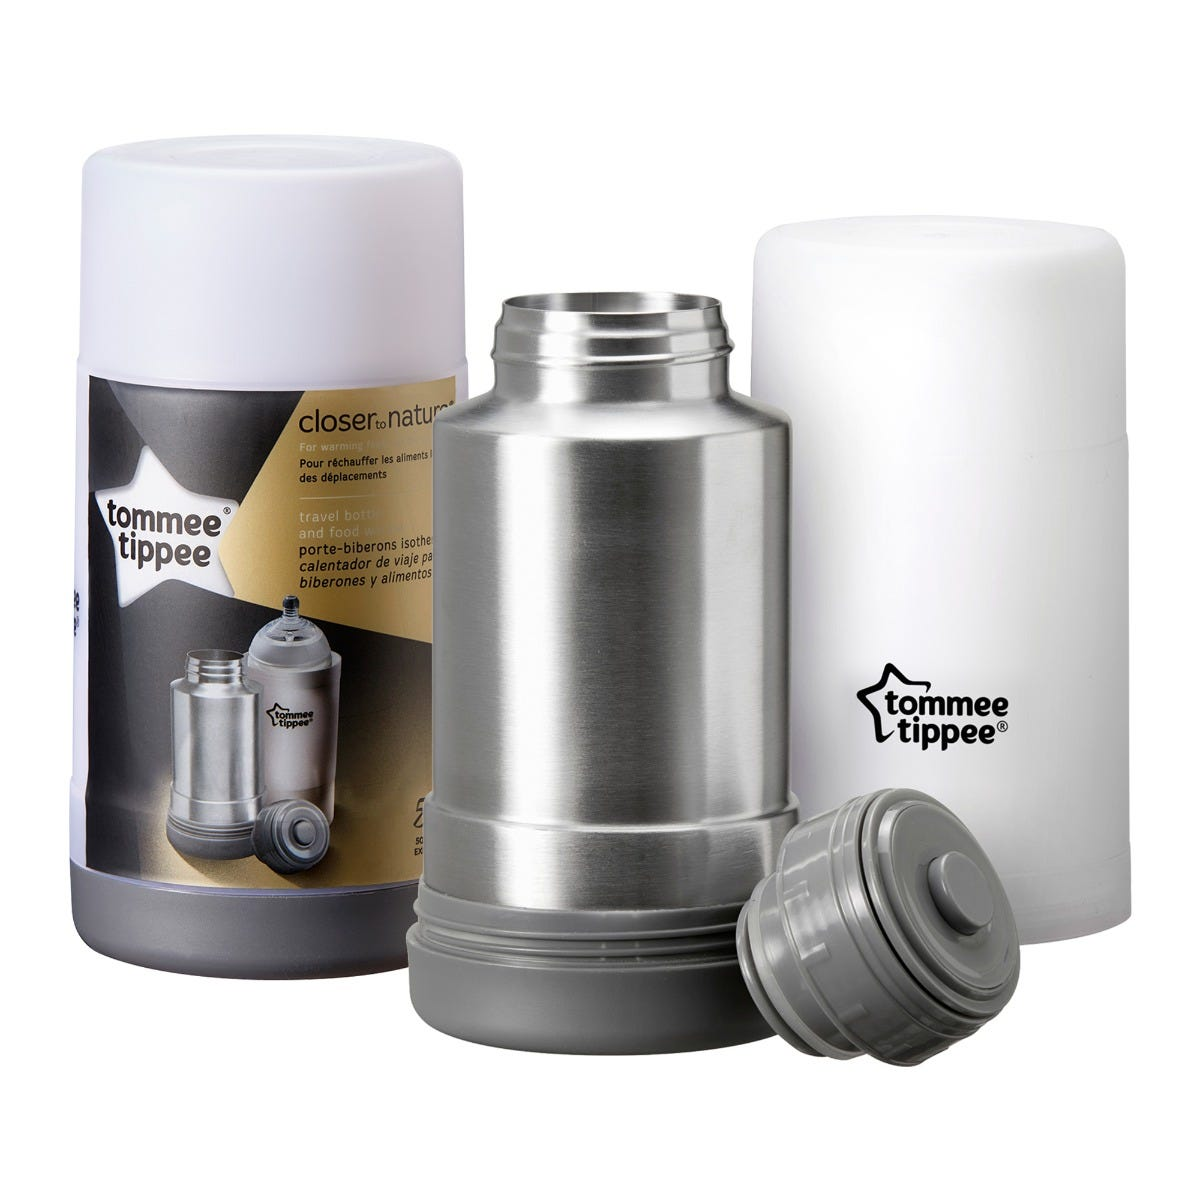 Travel Bottle and Food Warmer with packaging